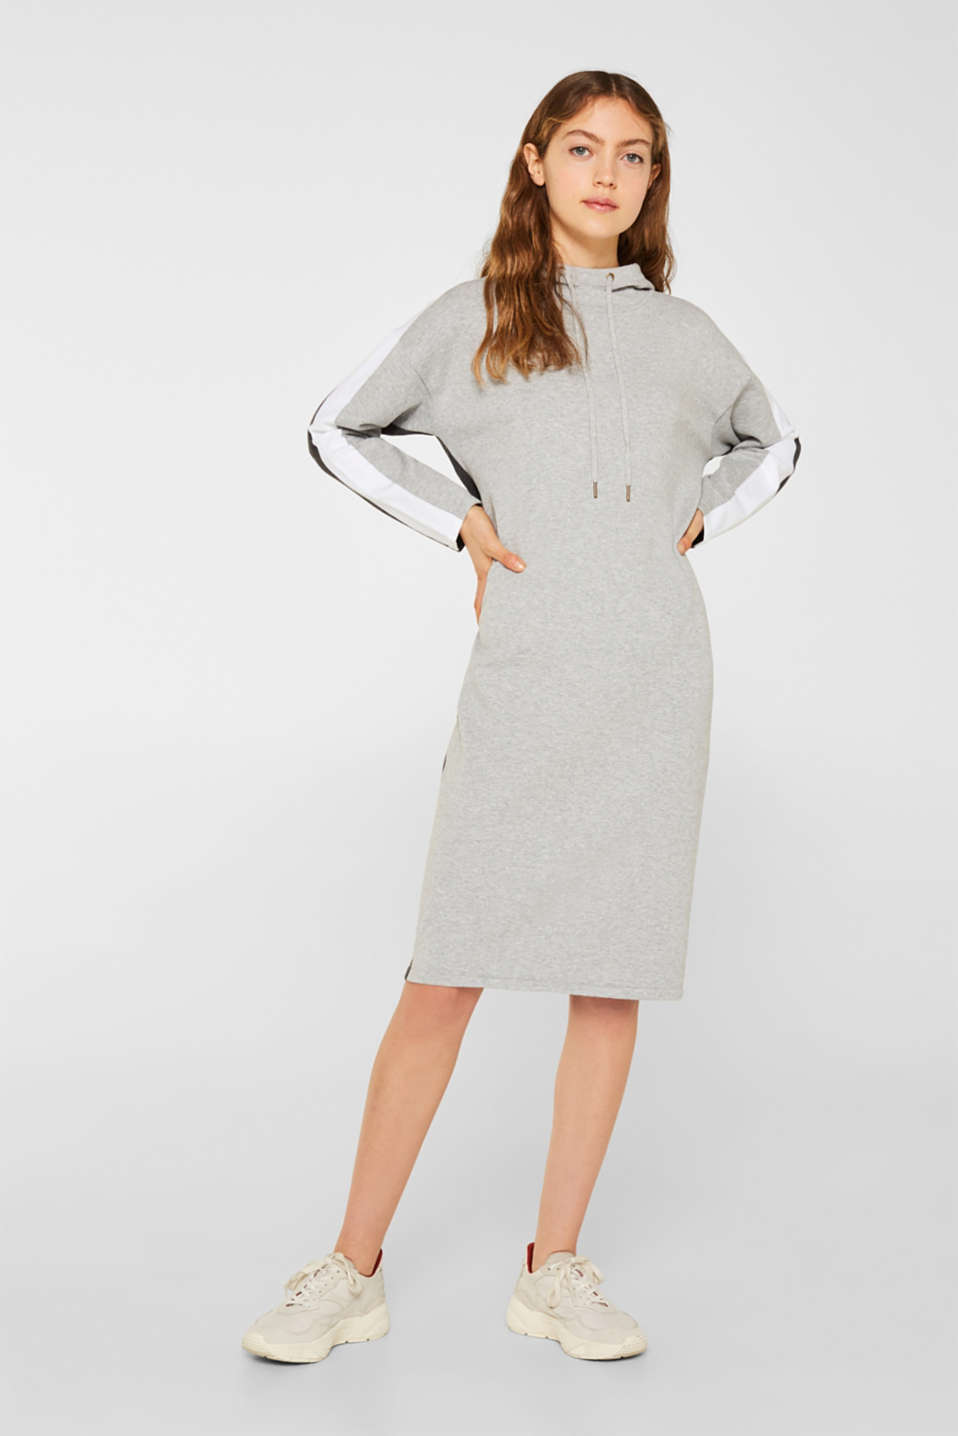 Dresses flat knitted, LIGHT GREY 4, detail image number 1